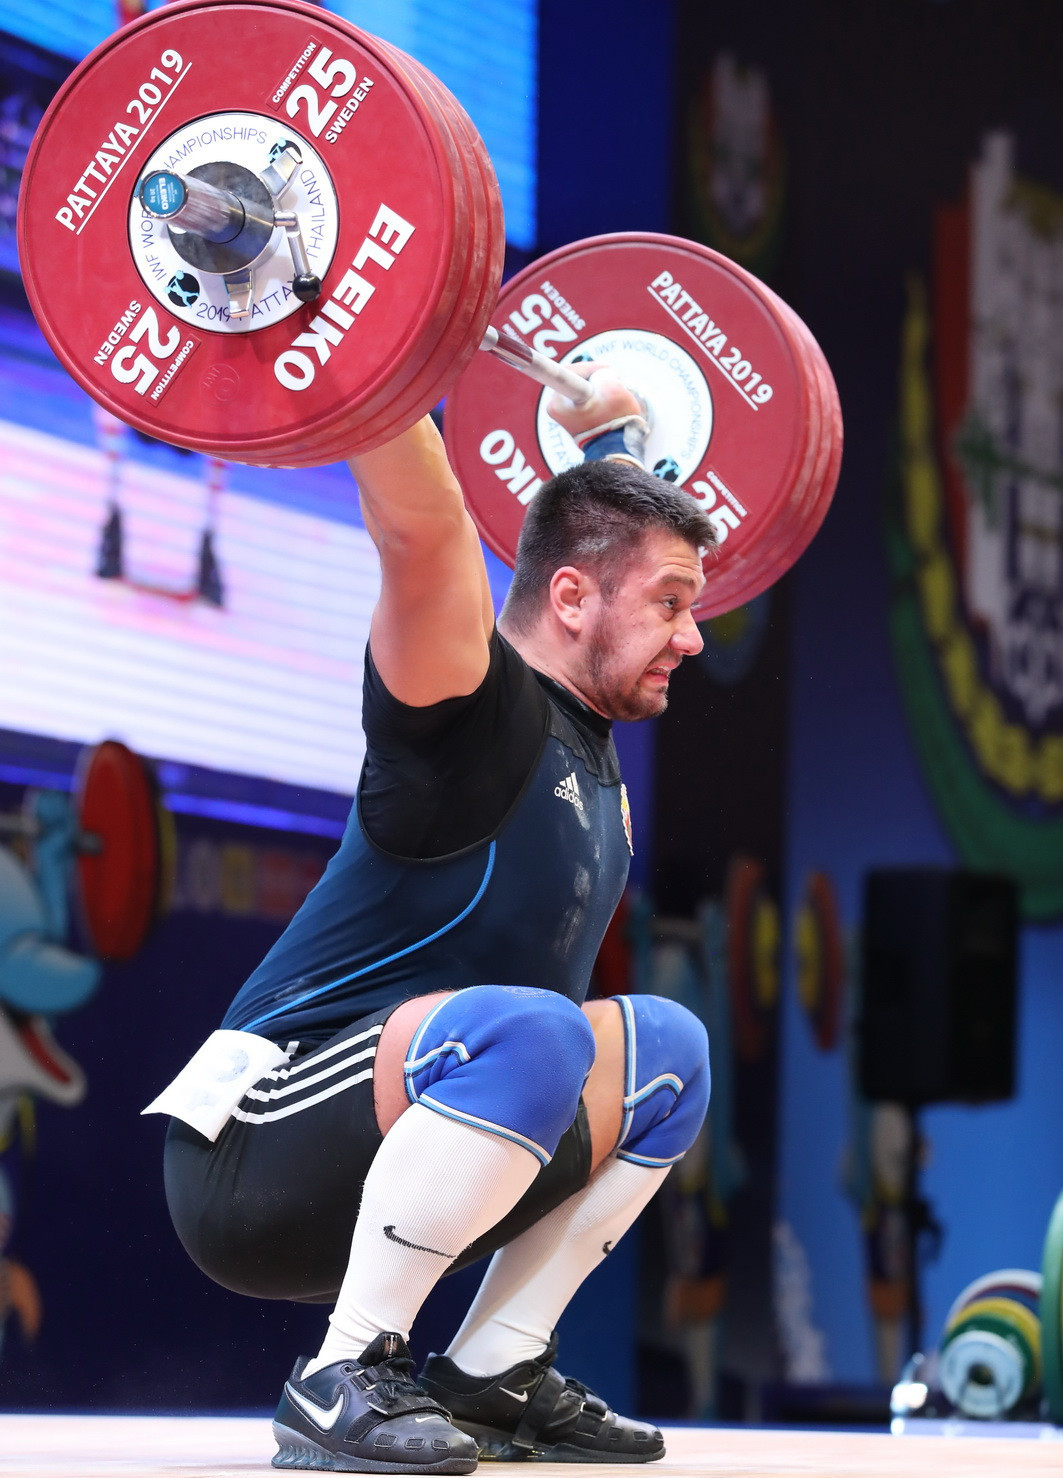 Belarus' Yauheni Tsikhantsou prevailed in a highly-competitive men's 102kg event ©IWF